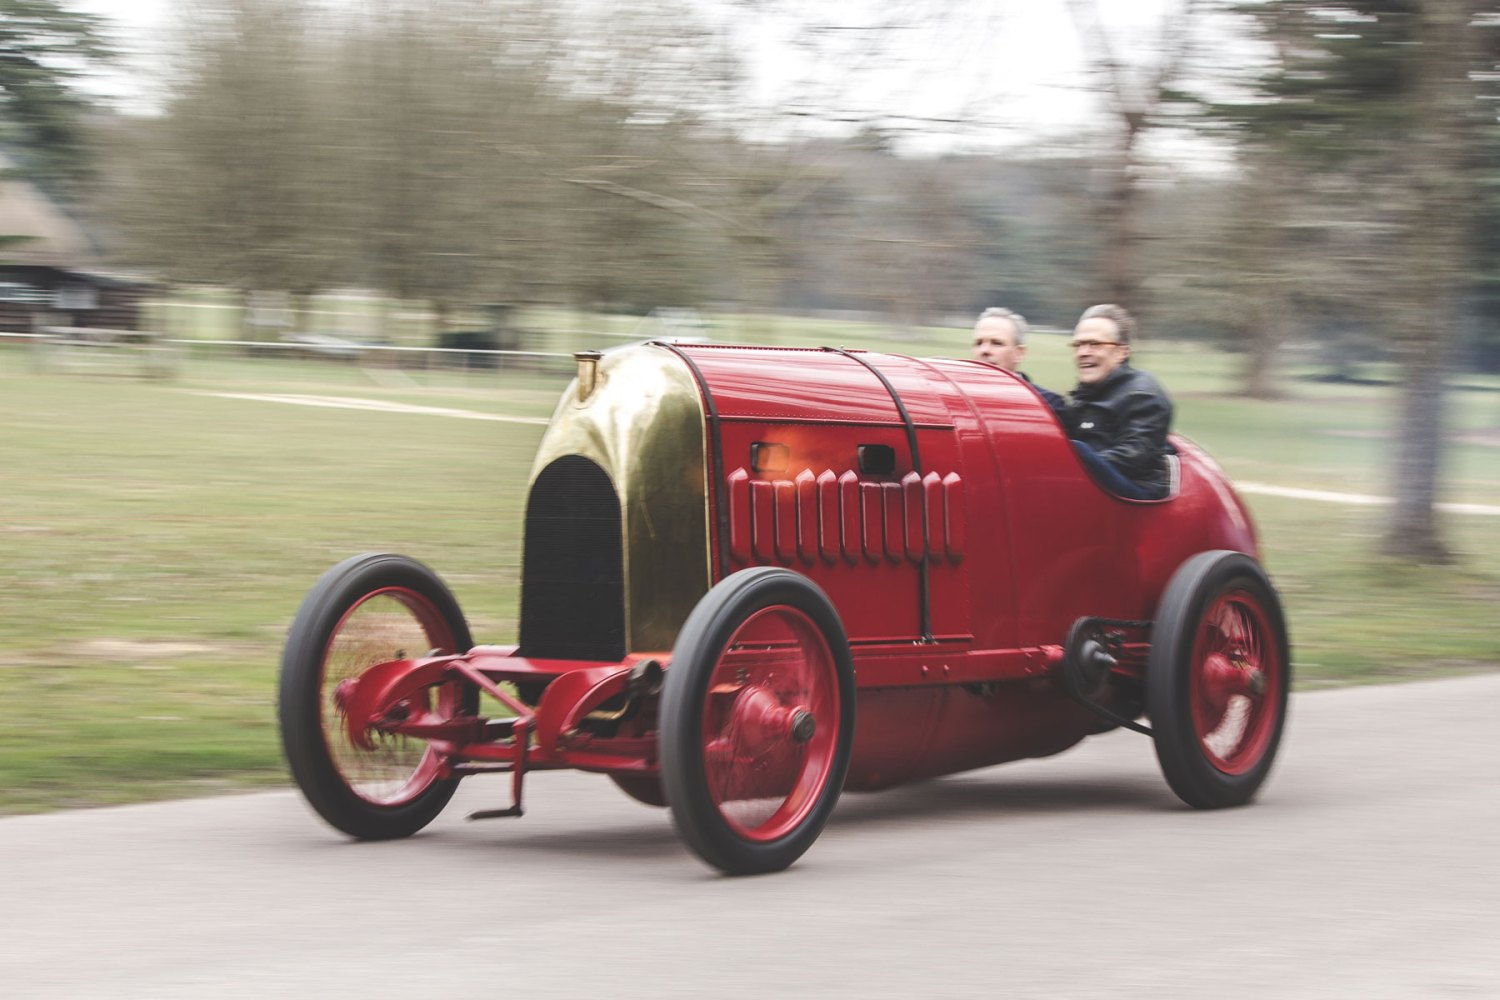 Goodwood FoS 2015 preview